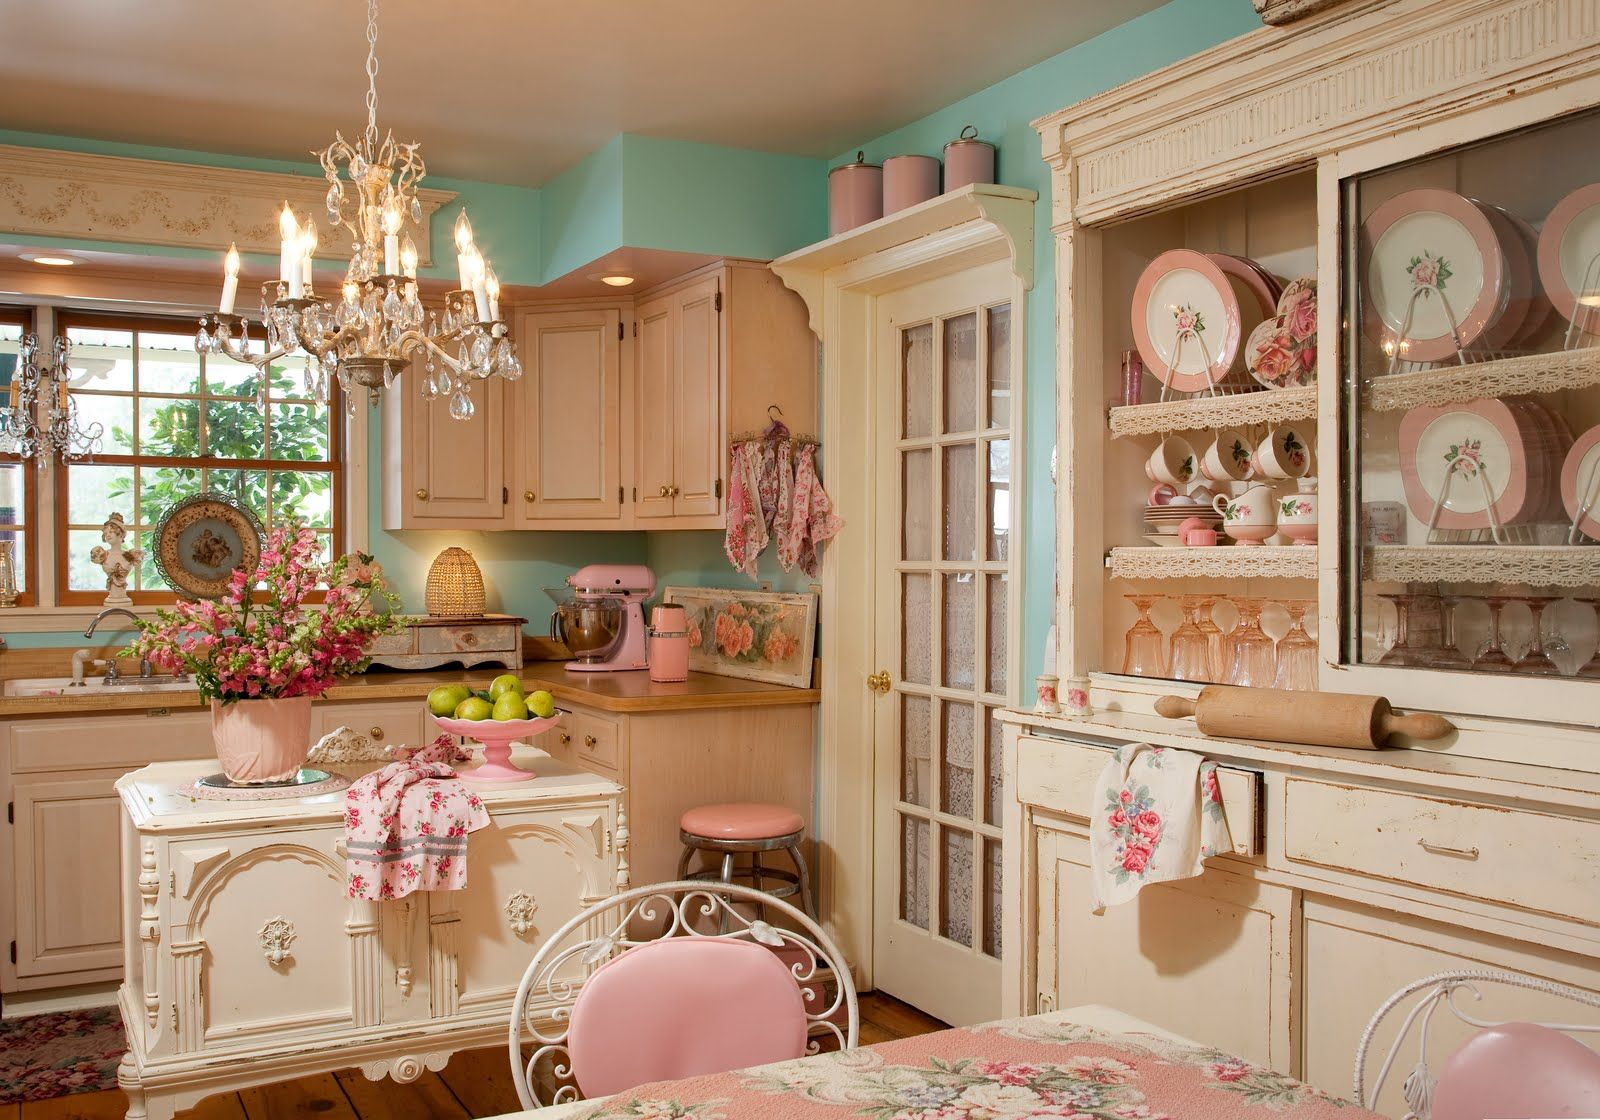 sweet-shabby-chic-kitchen-idea-in-white-and-pink-theme